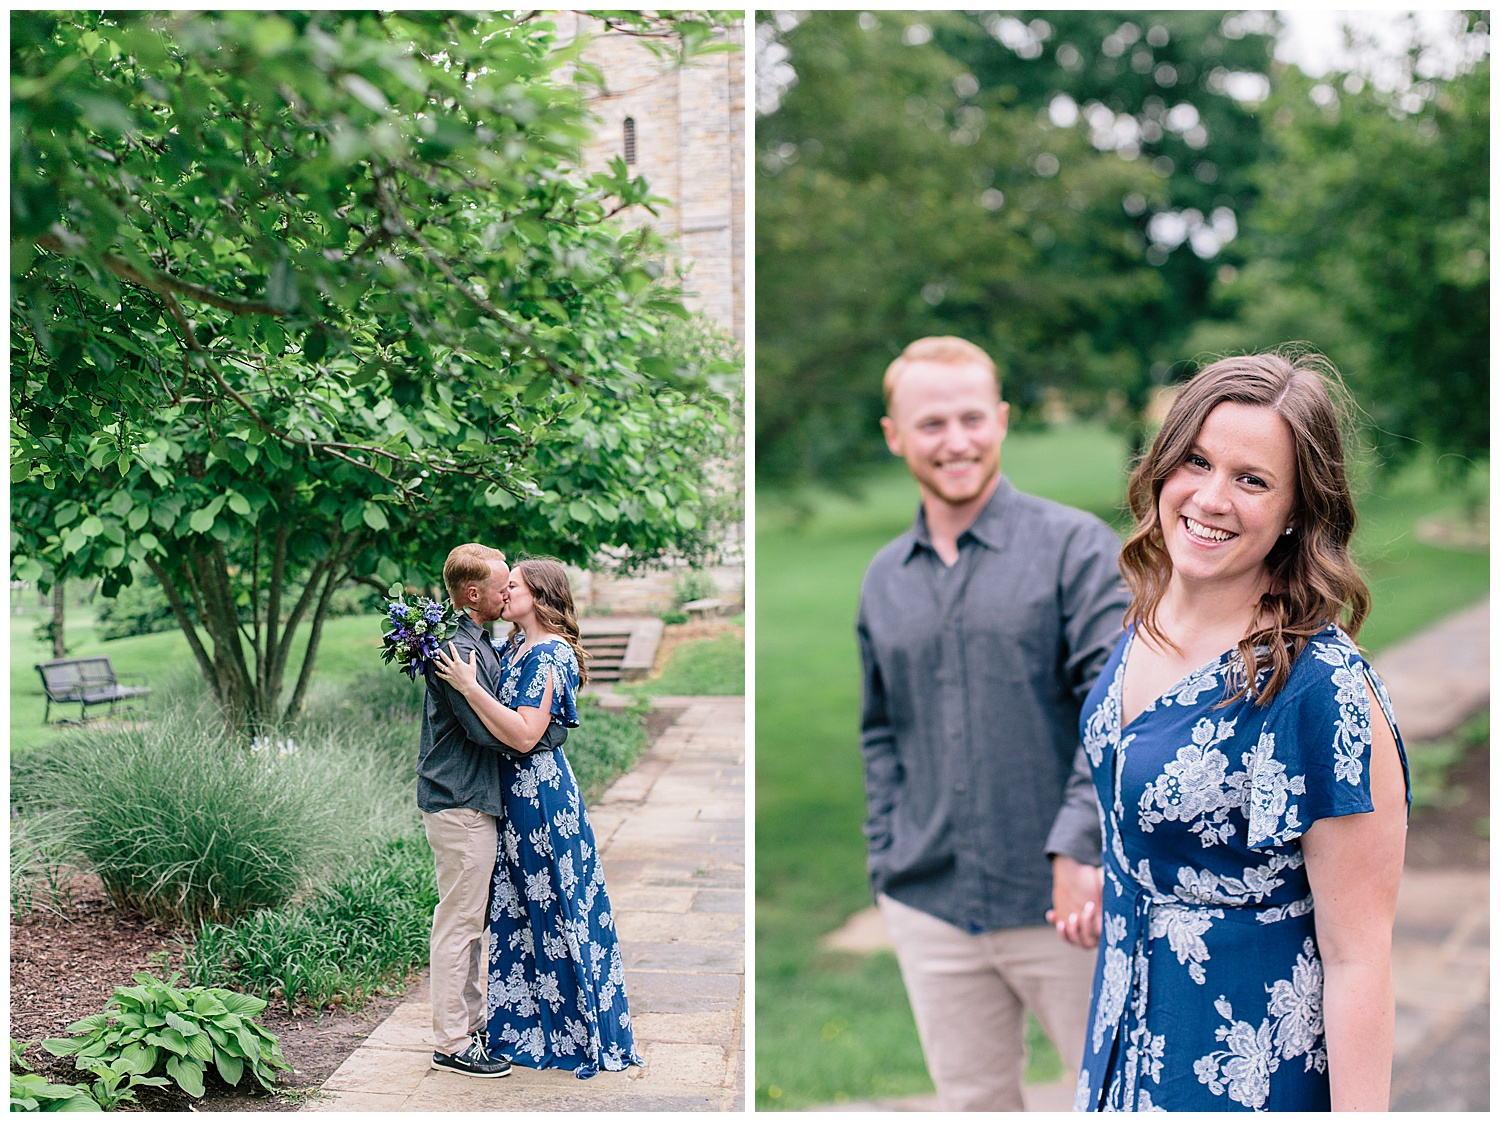 emily-belson-photography-frederick-md-engagement-01.jpg